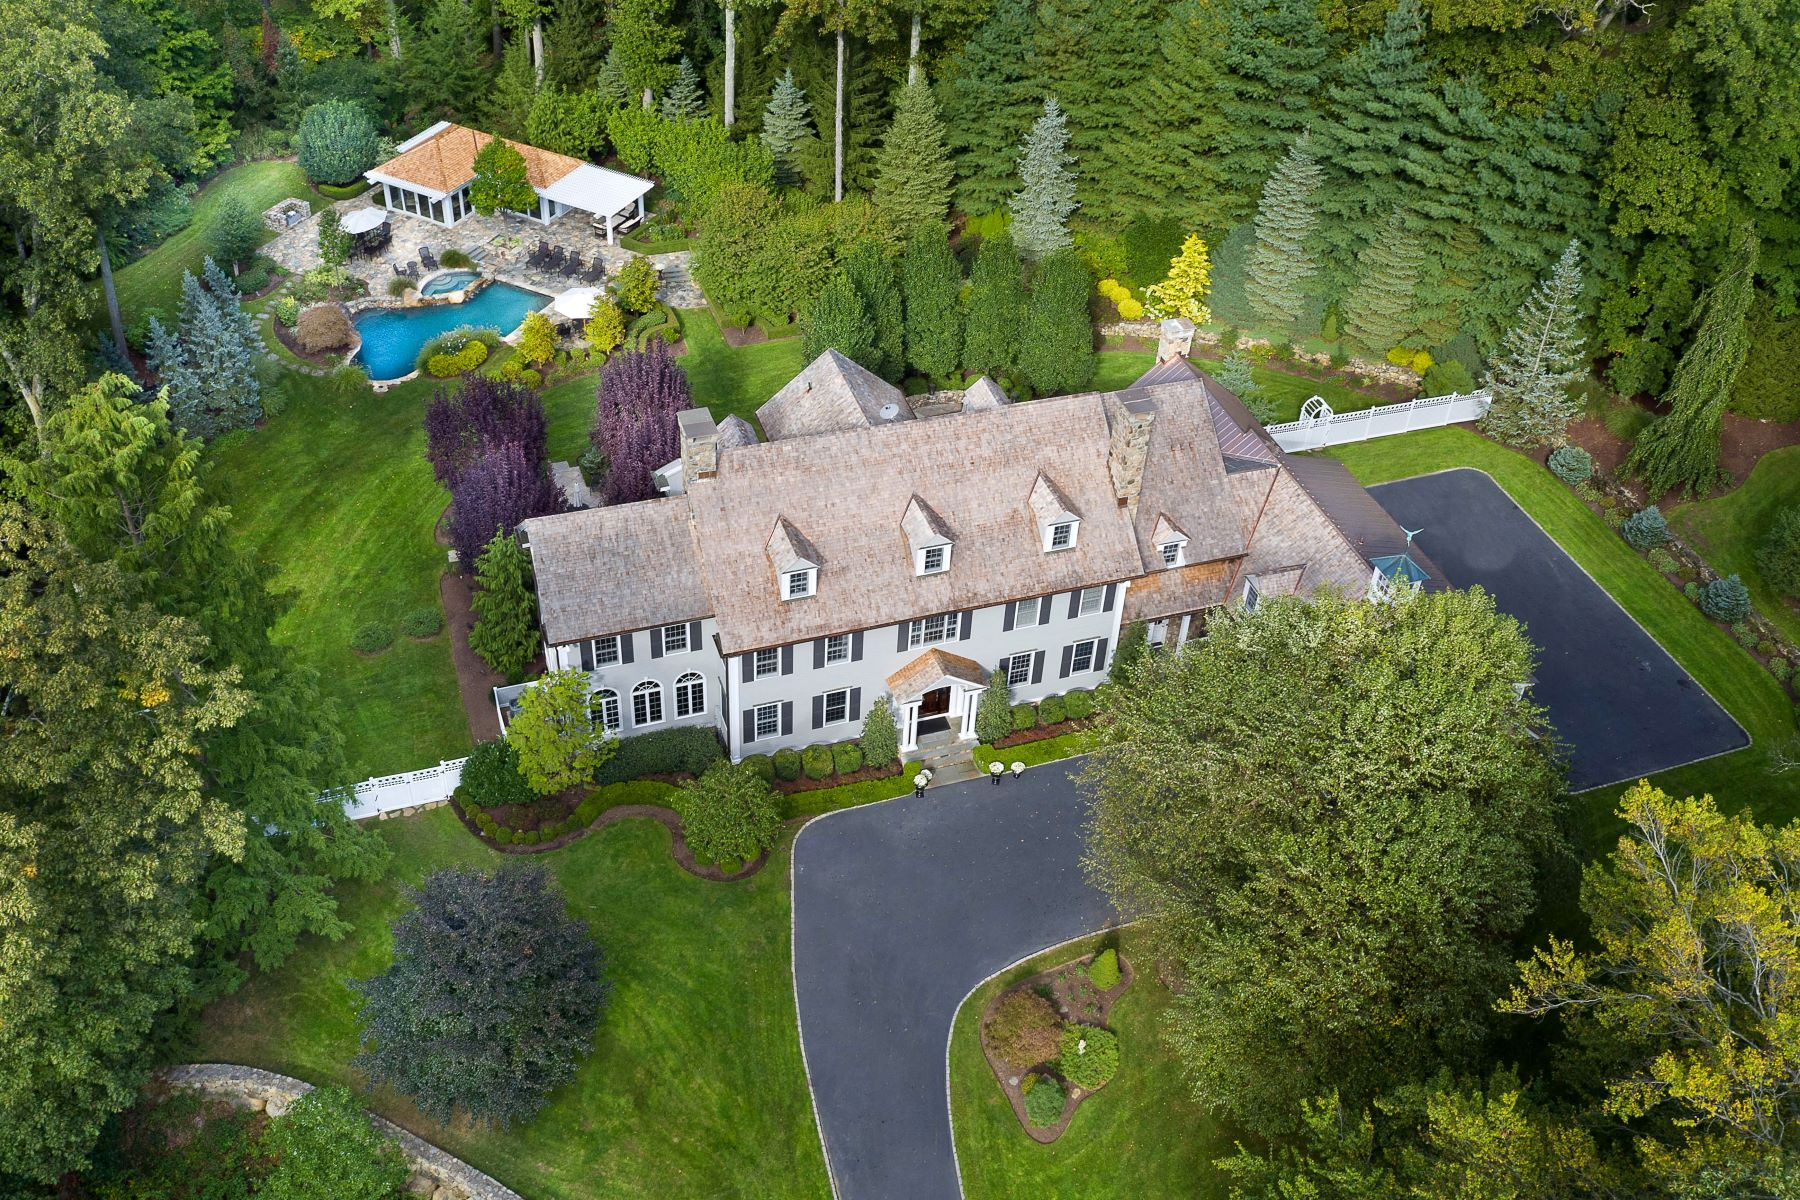 Casa Unifamiliar por un Venta en Stately Home and Grounds in West Road Enclave 709 West Road New Canaan, Connecticut 06840 Estados Unidos